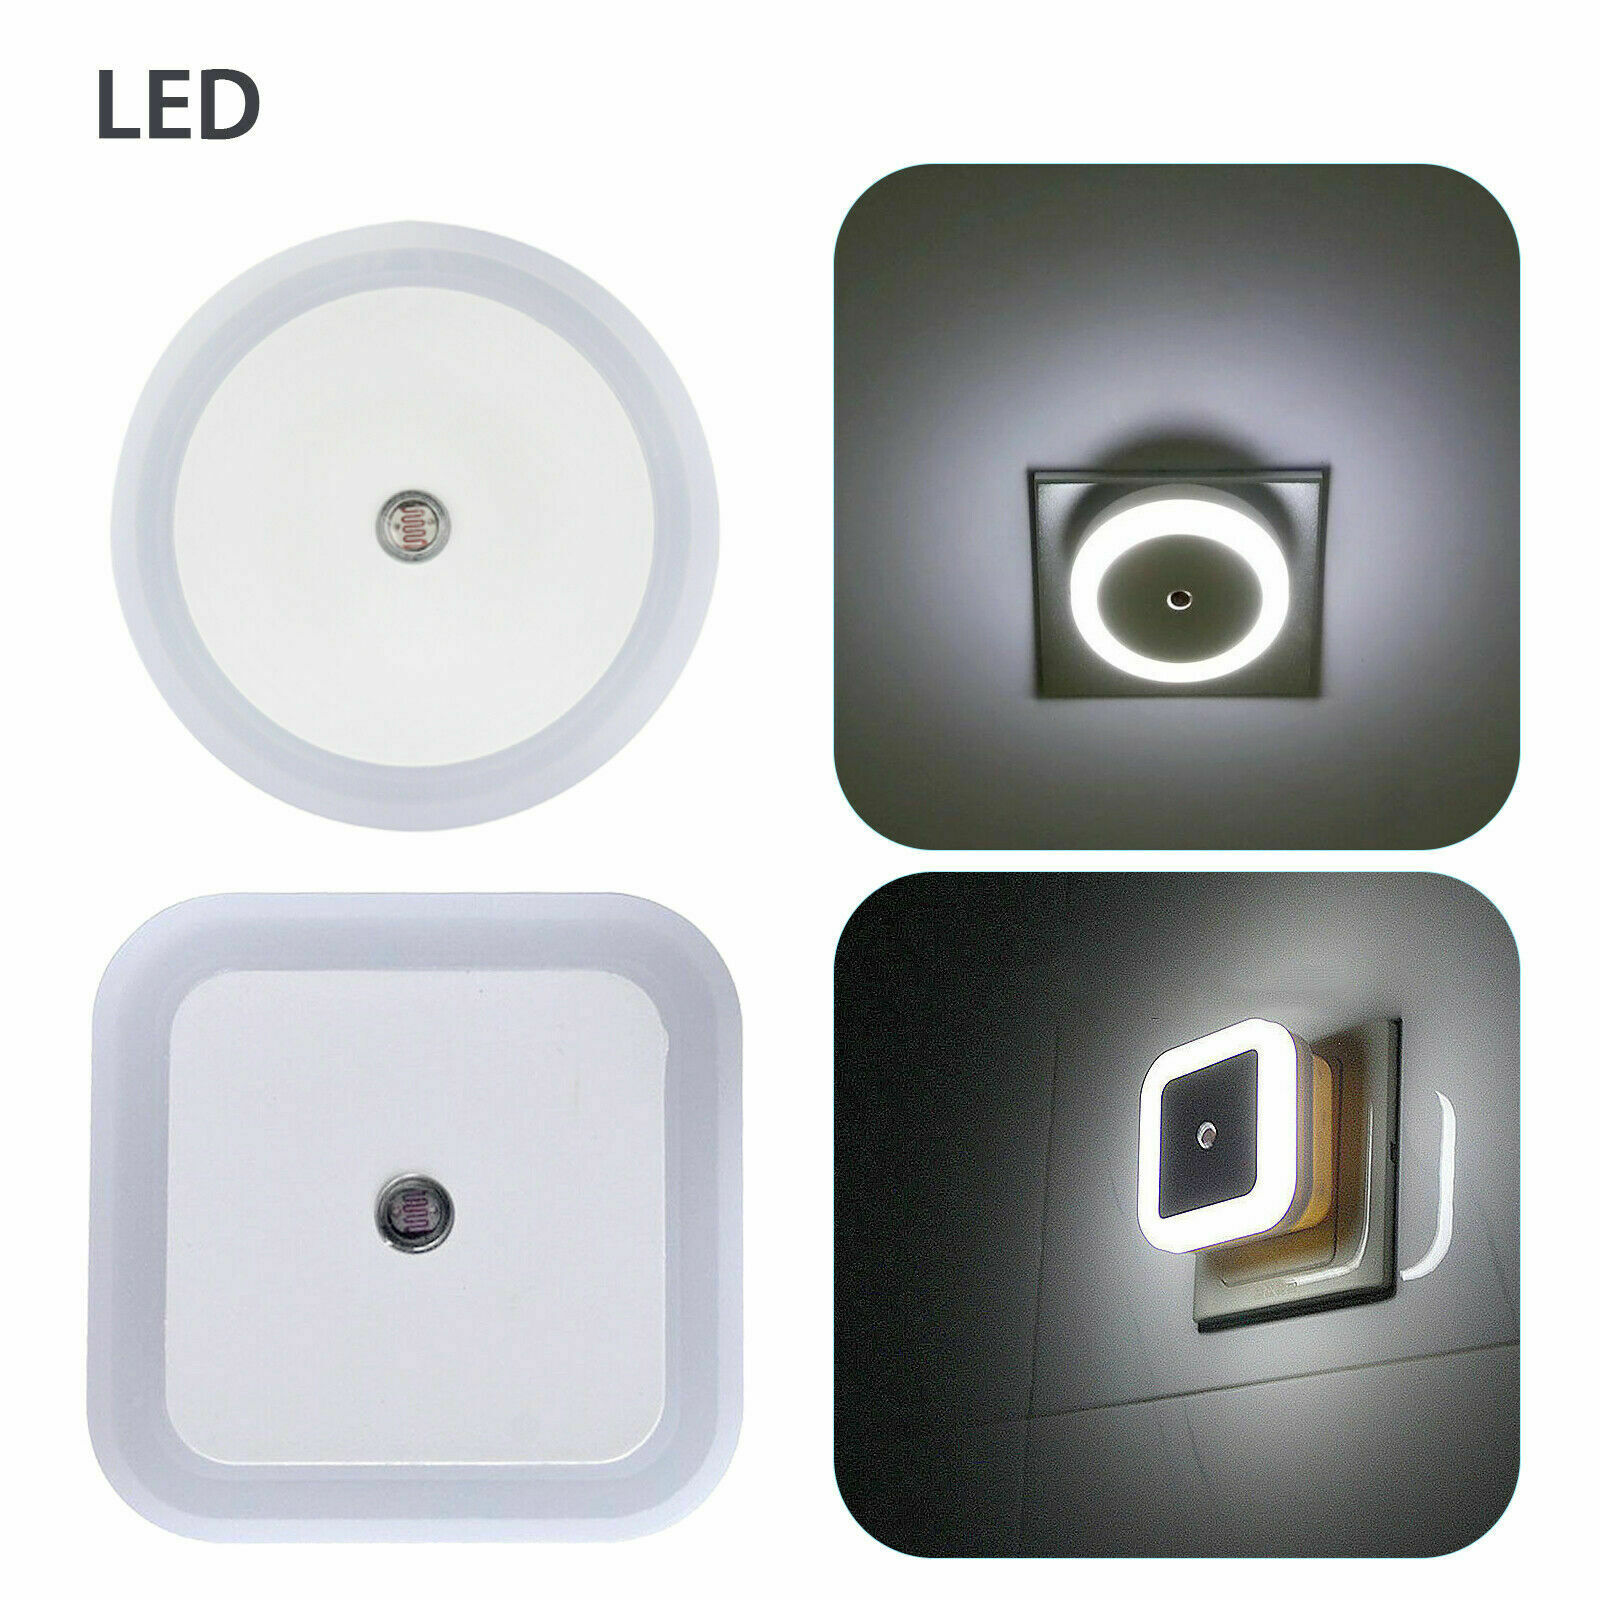 2/4/6/8 Pack Plug in LED Night Light Wall Lamp Dusk to Dawn Sensor White 0.5w Home & Garden